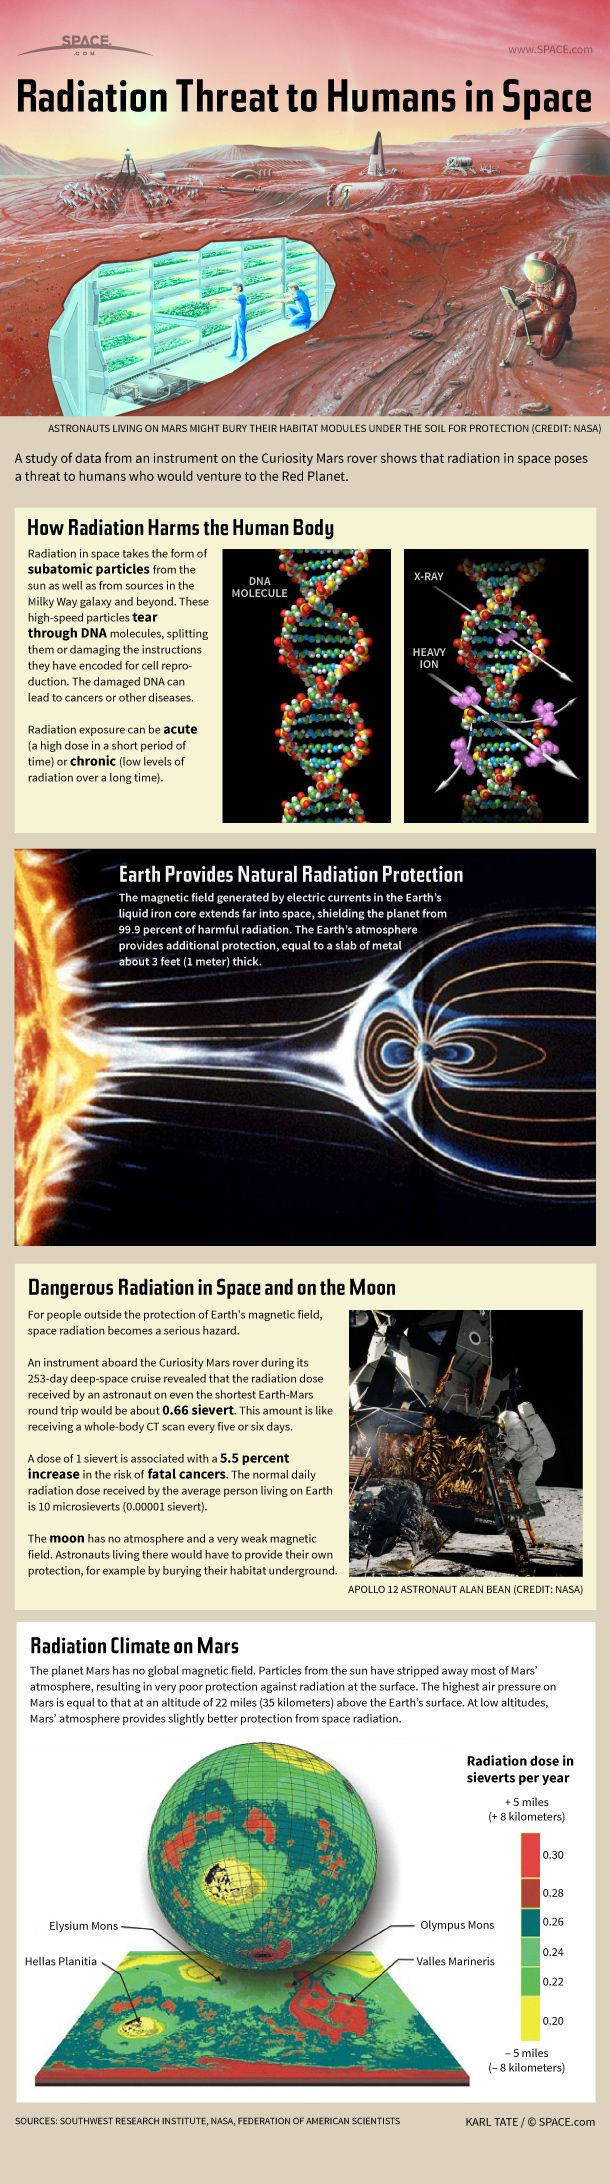 Space Radiation Threat to Astronauts Explained (Infographic)